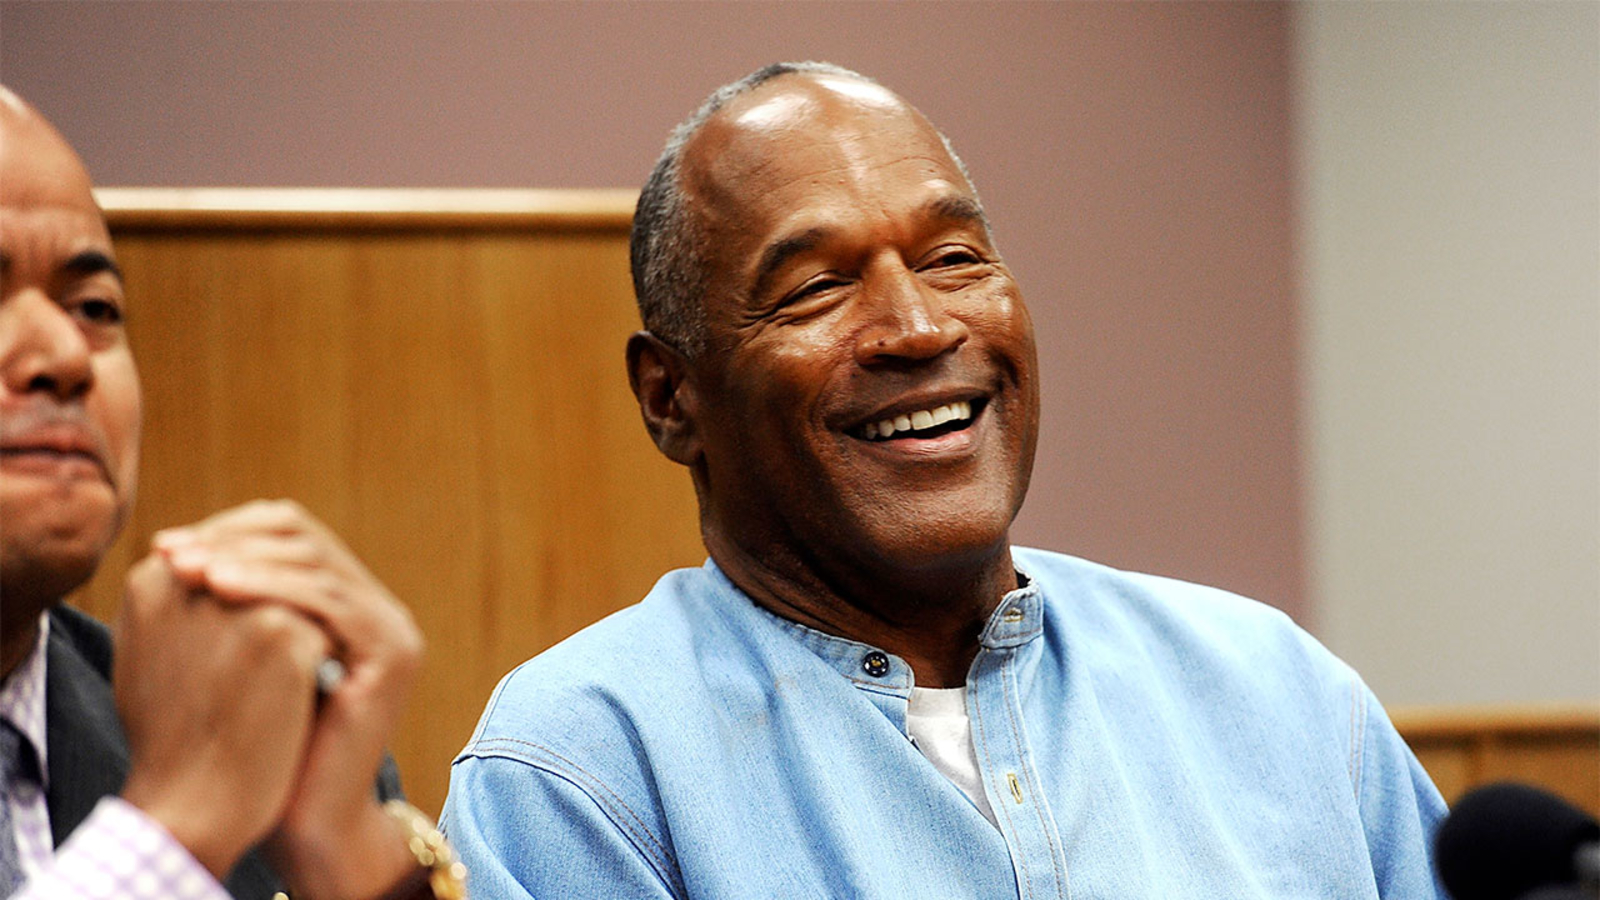 O.J. Simpson apparently joins Twitter: 'I've got a little getting even to do'